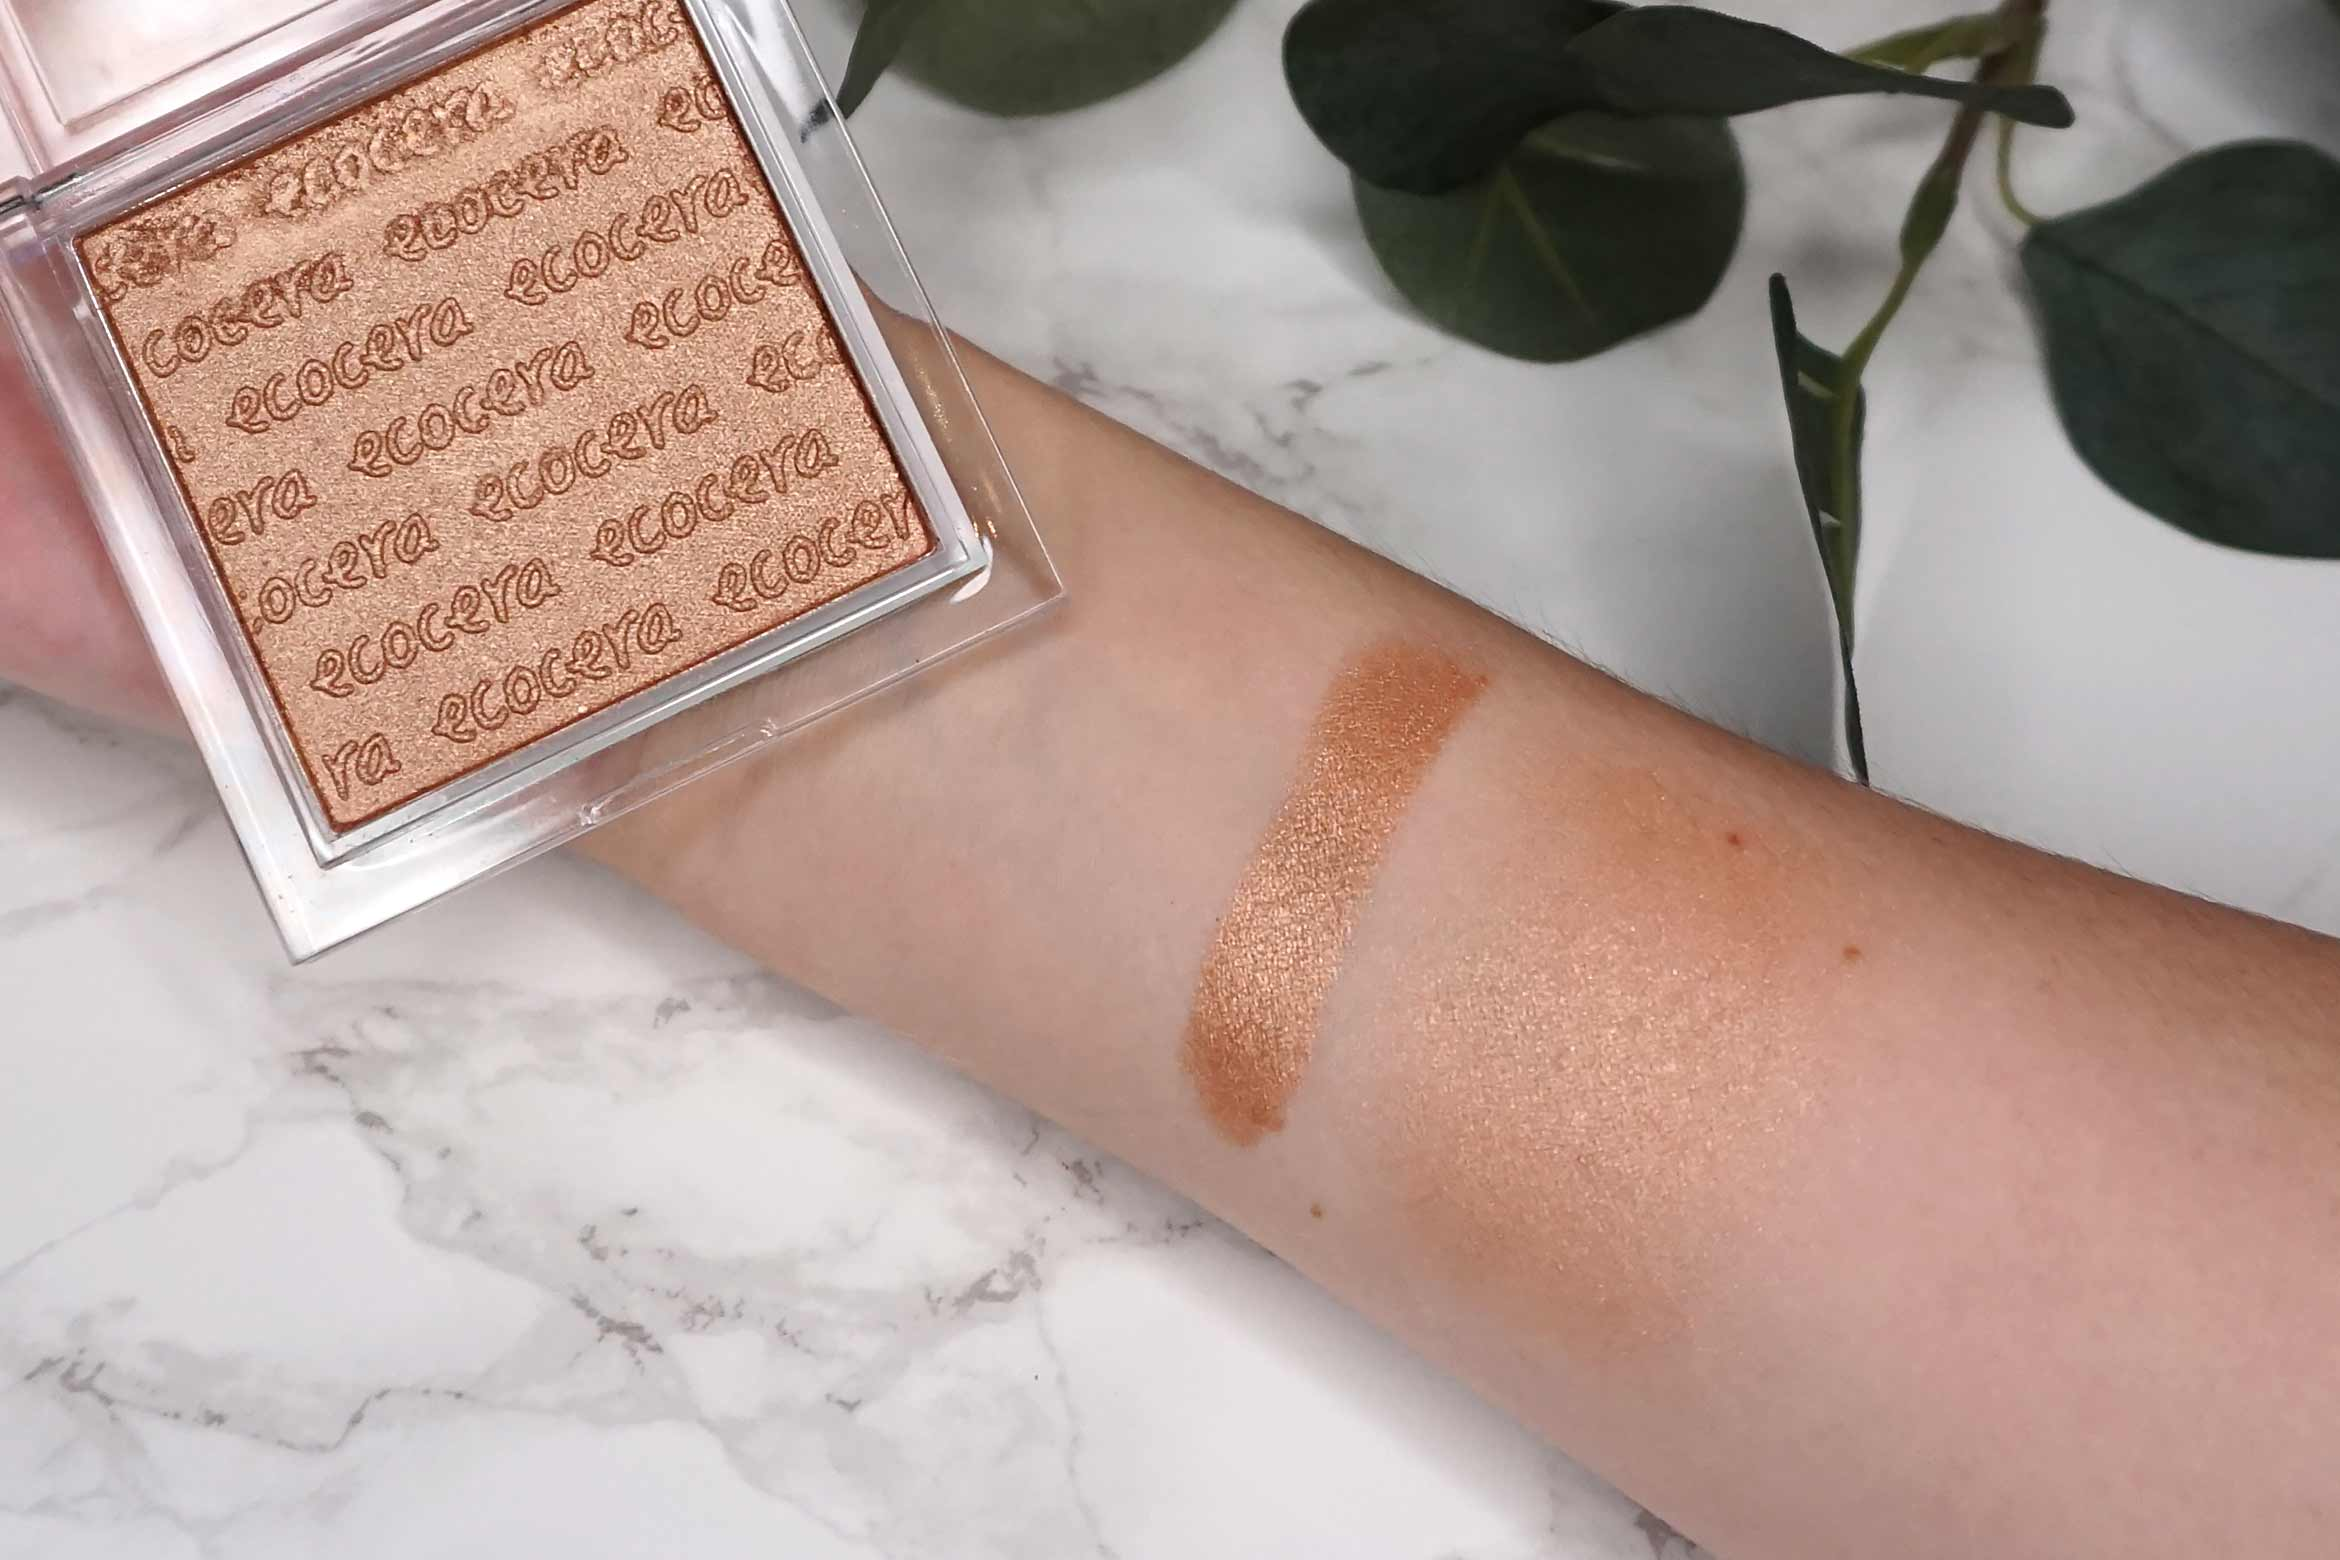 Ecocera-india-bronzer-swatch-review